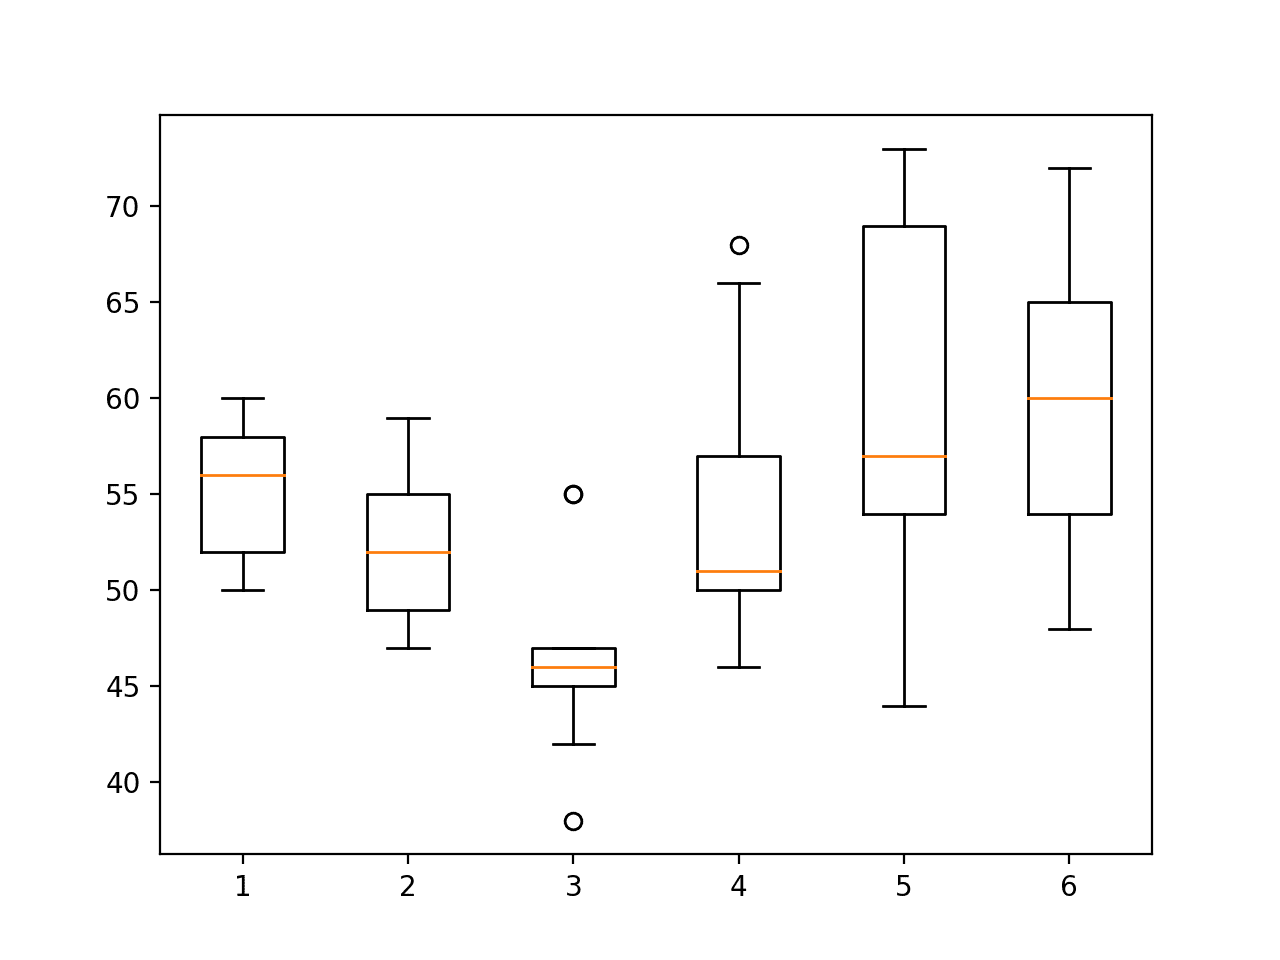 Boxplot of activity durations per subject on test set